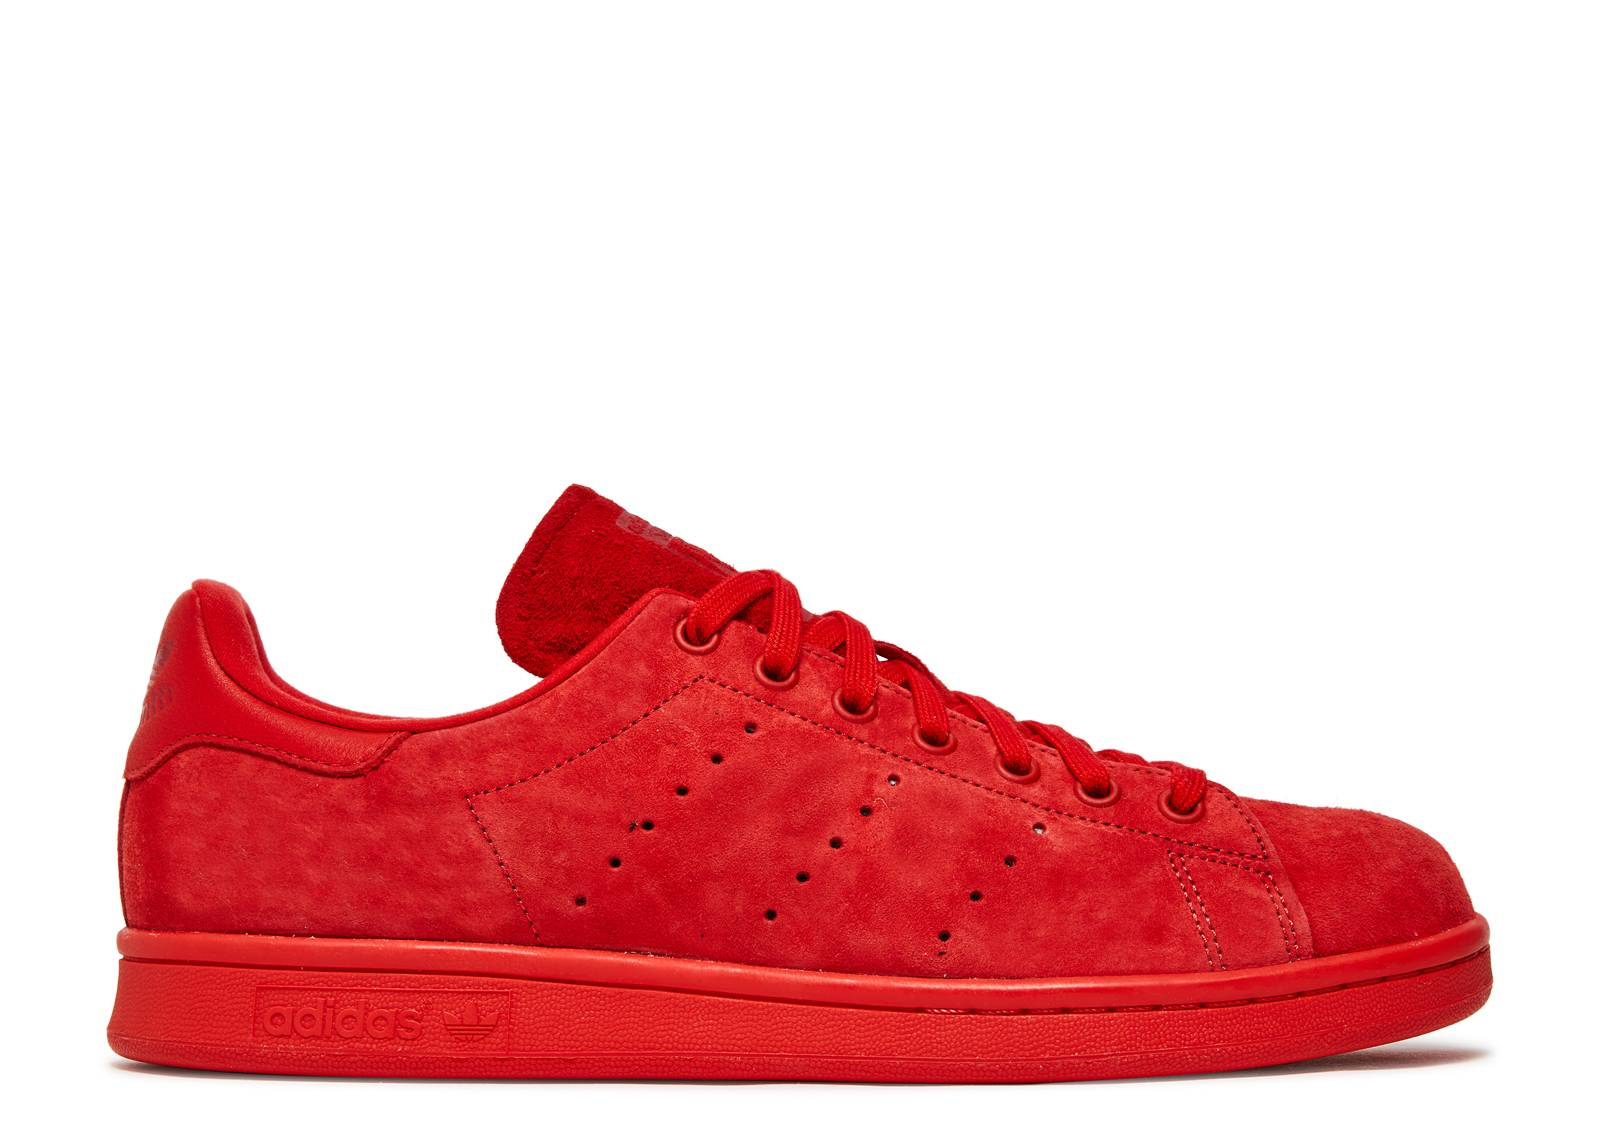 extraer prestar negar  Stan Smith 'Power Red' - Adidas - S75109 - red/red/power red | Flight Club